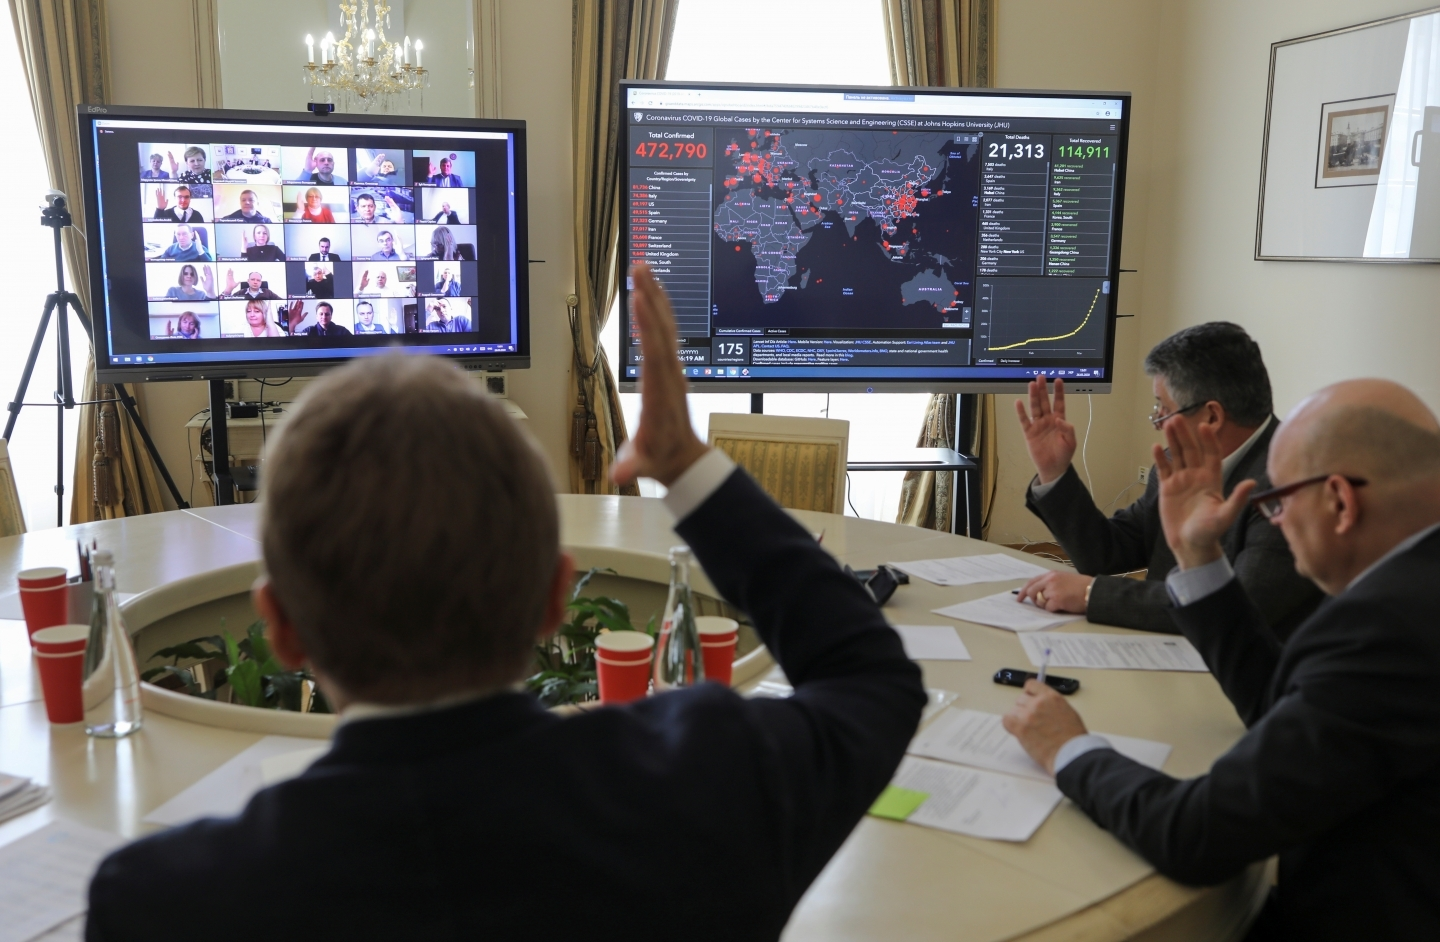 Members of the city commission to prevent the spread of coronavirus disease (COVID-19) vote during a meeting via Zoom video link in Lviv, Ukraine March 26, 2020. (REUTERS/Roman Baluk)